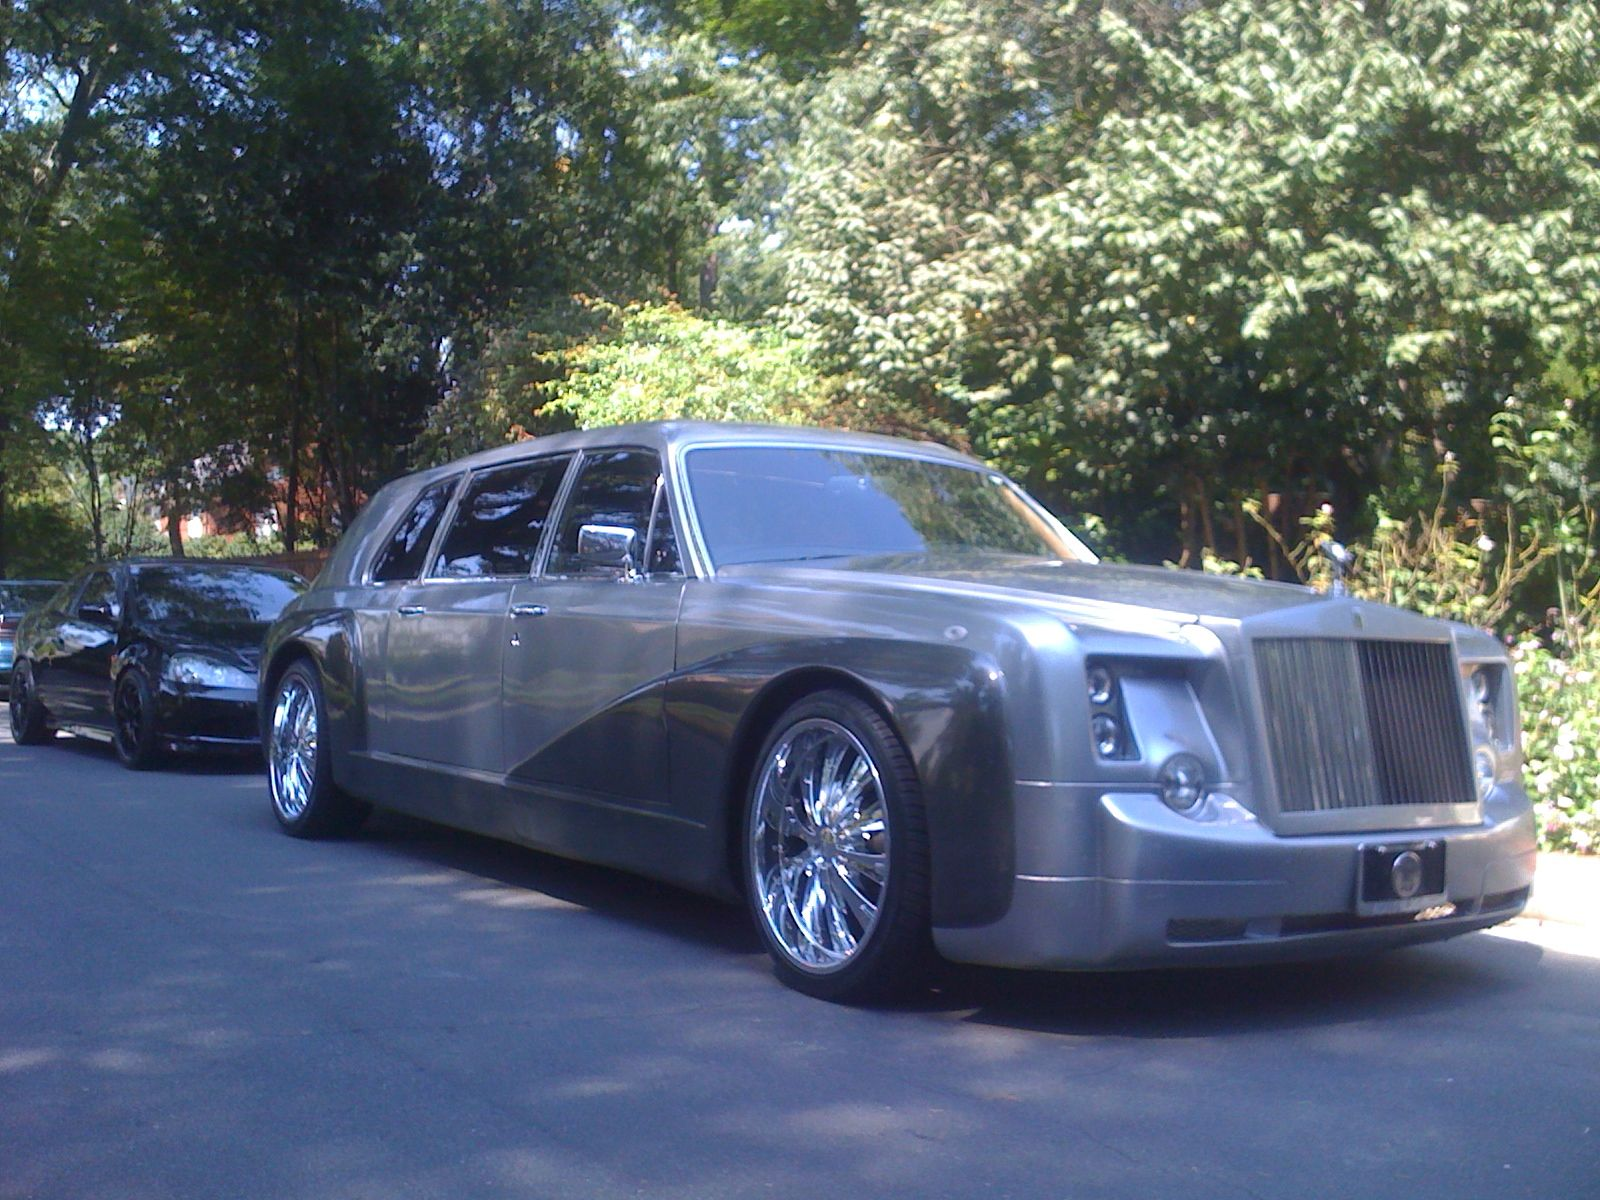 limos london hire bentley limo about in limousines rental herts fleet services